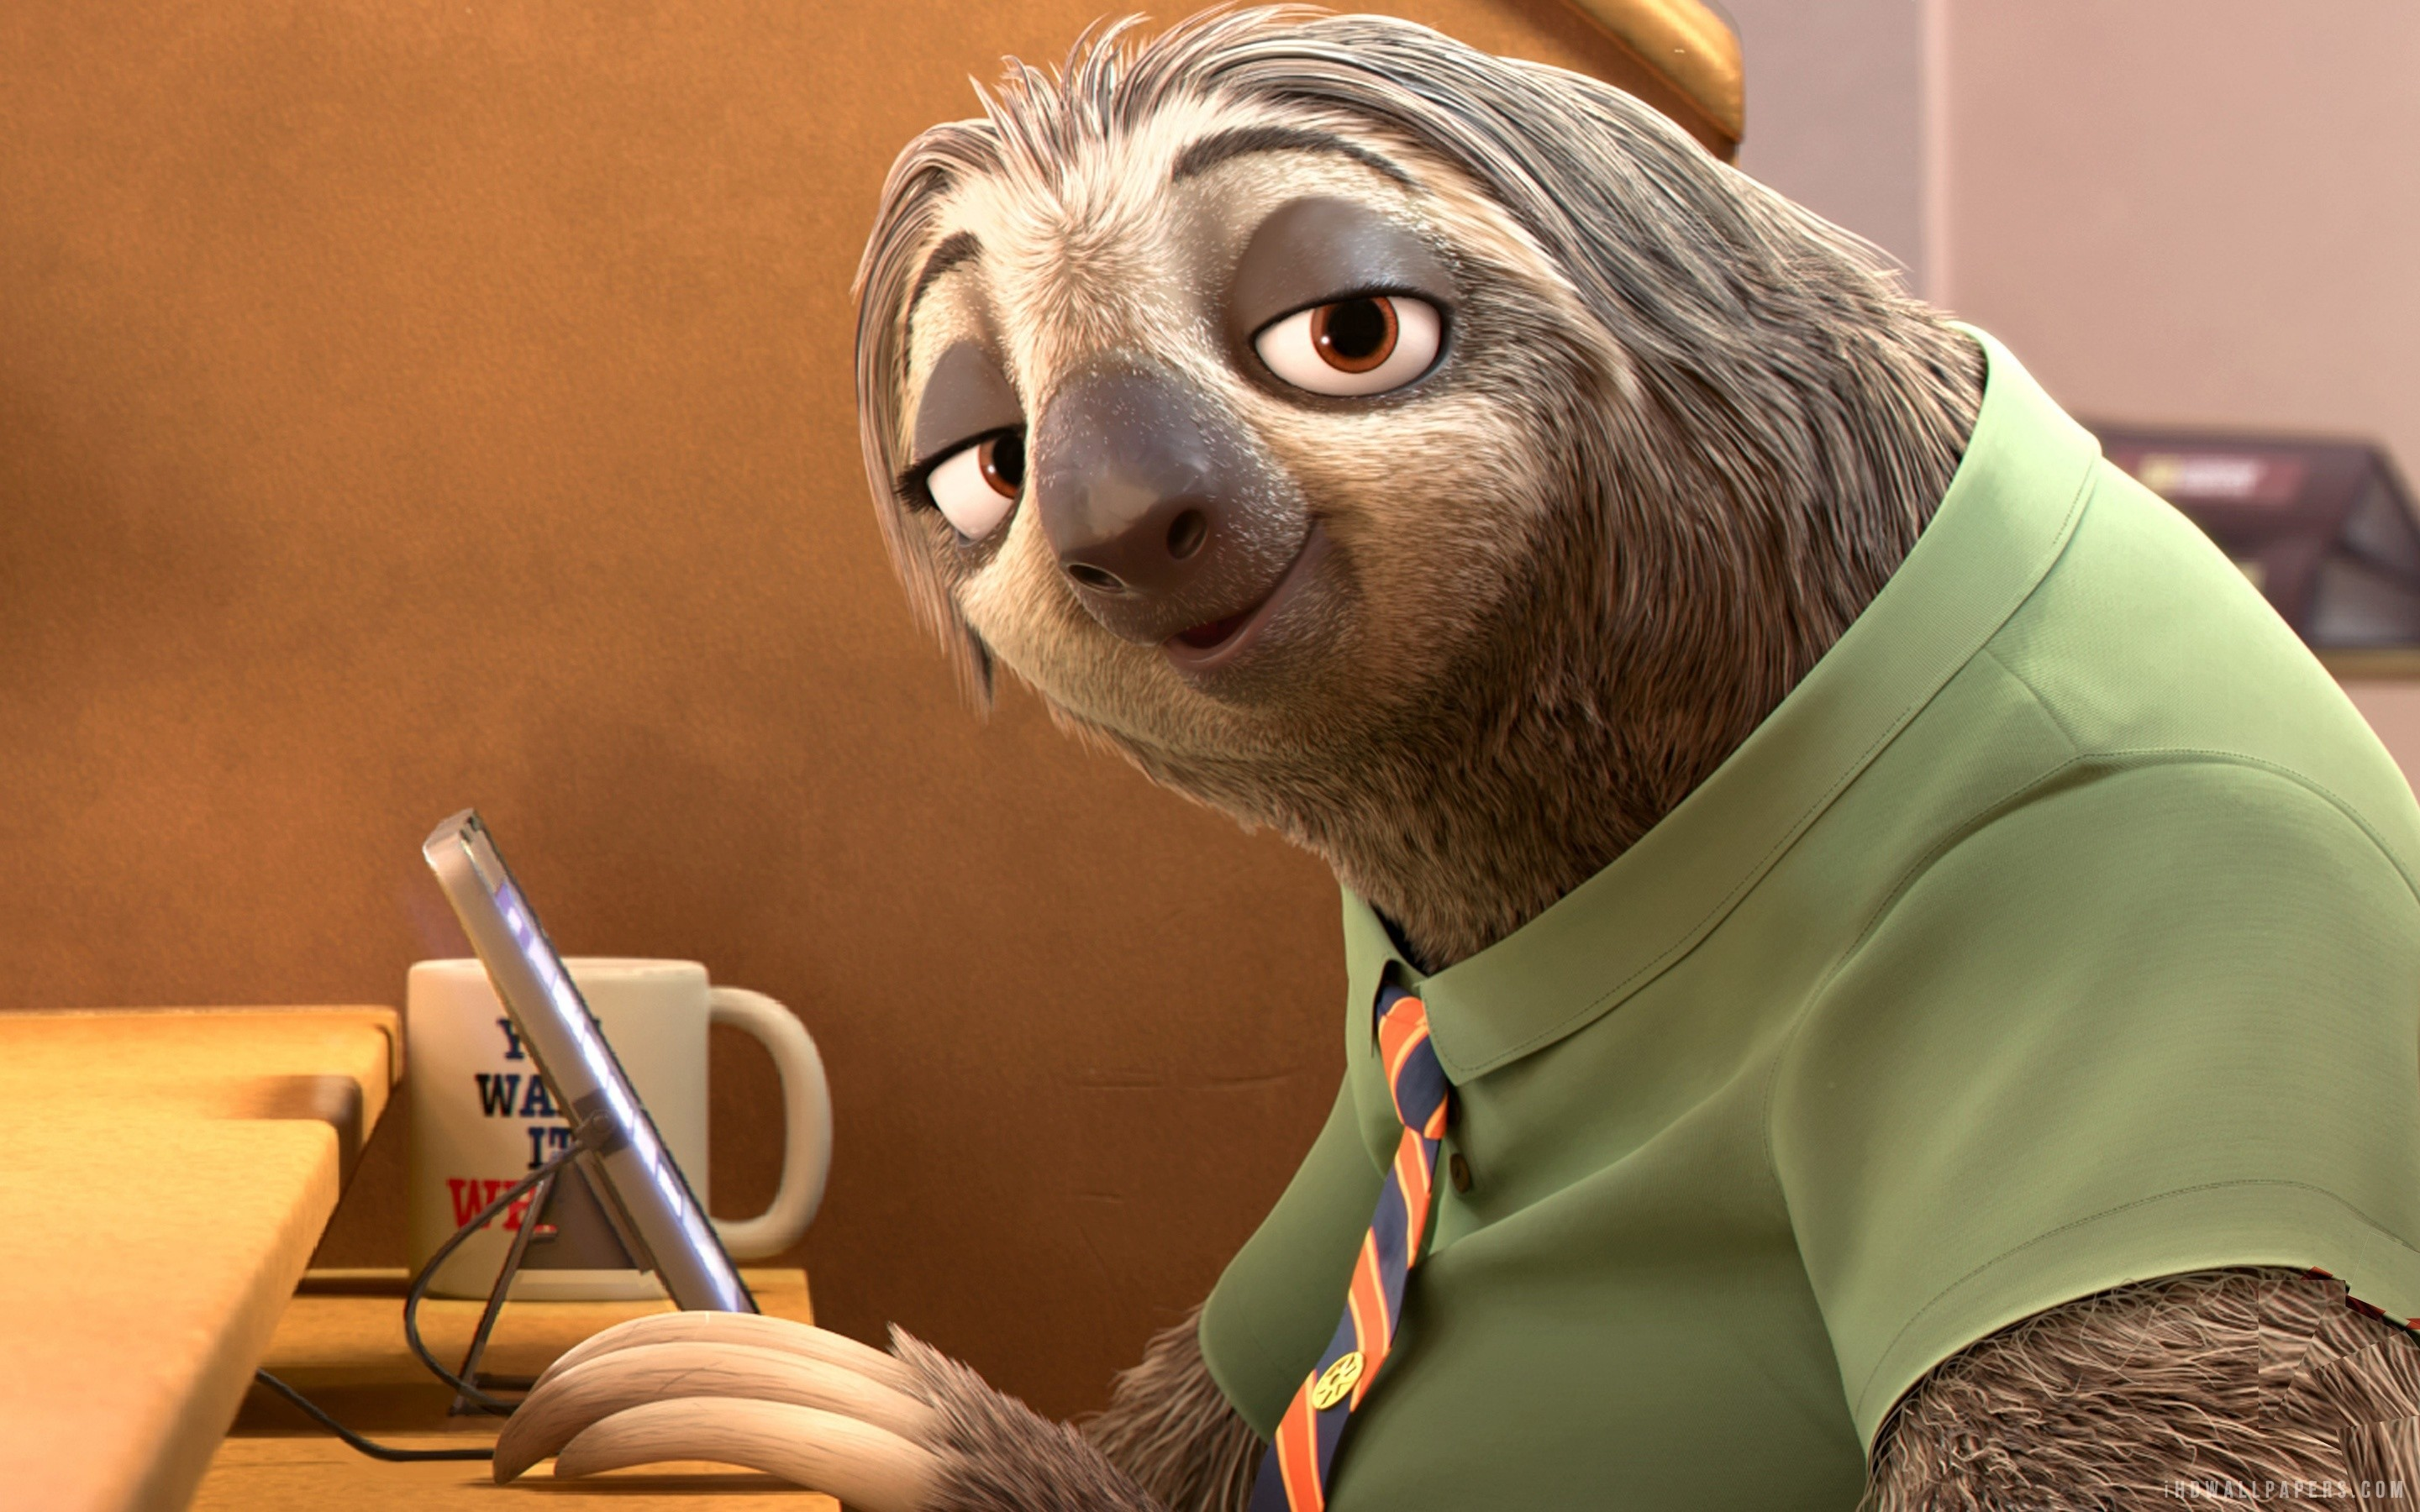 … Sloth in Zootopia Movie HD Wallpaper | iHD Wallpapers